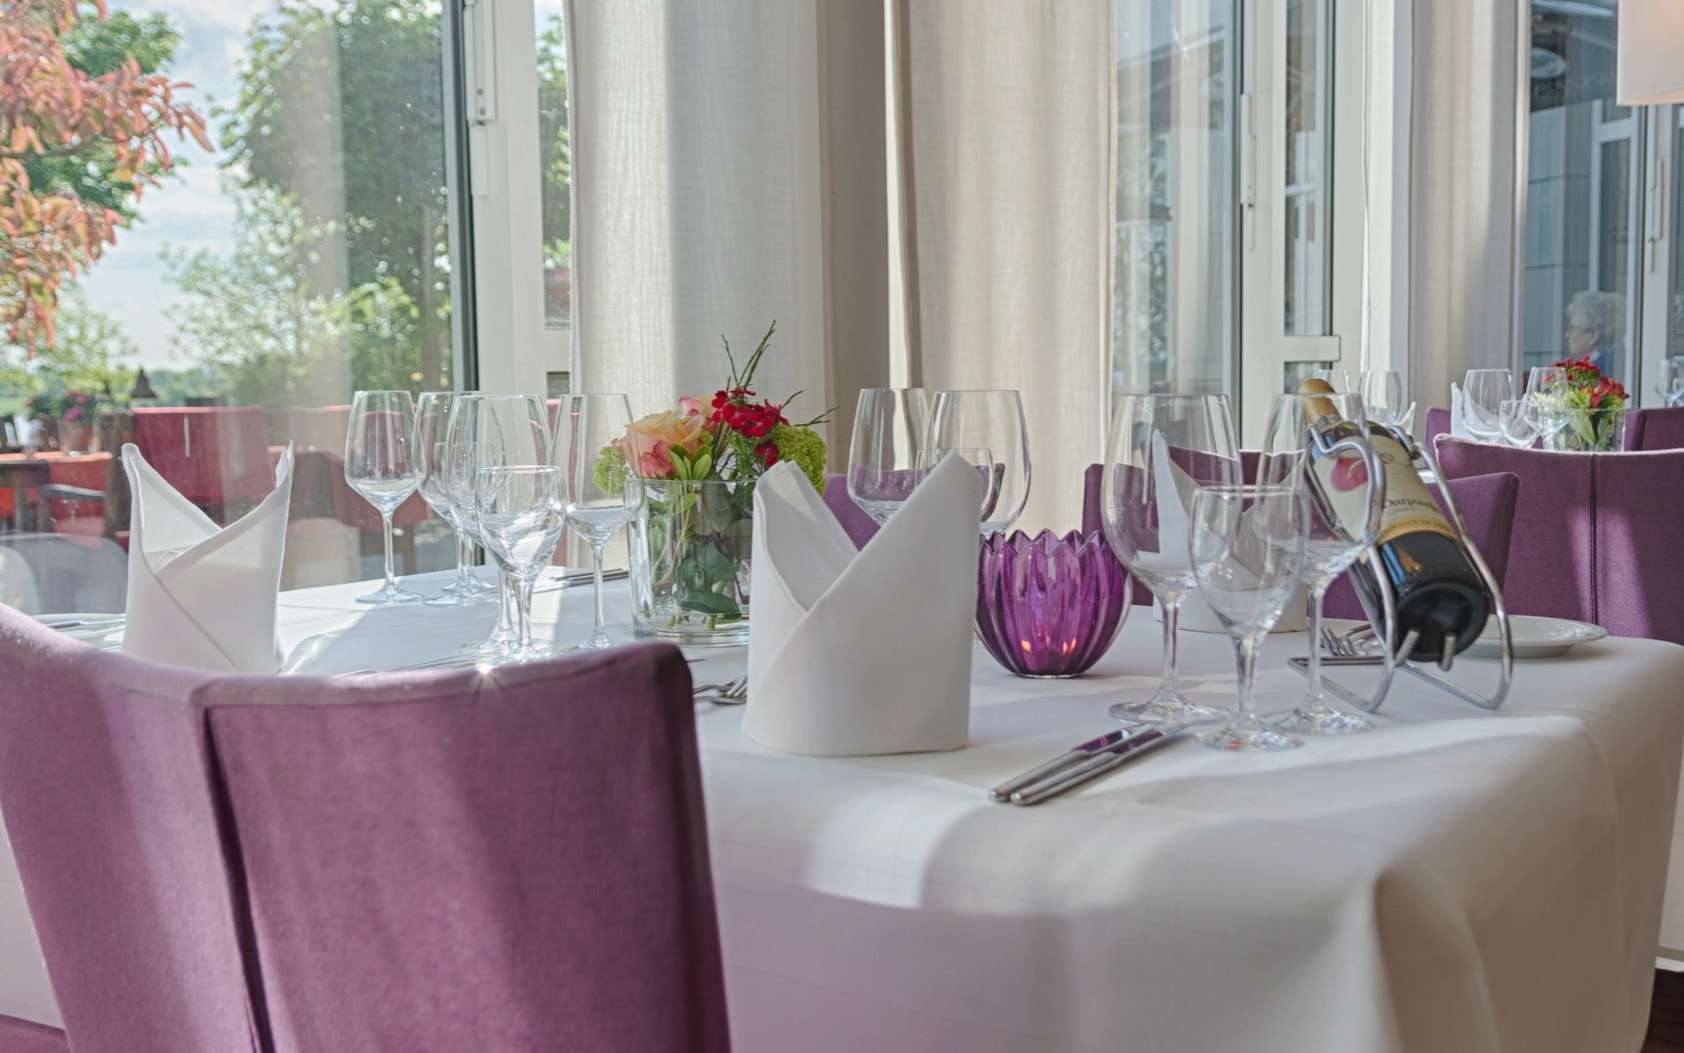 Welcome Hotel Wesel Restaurant 03